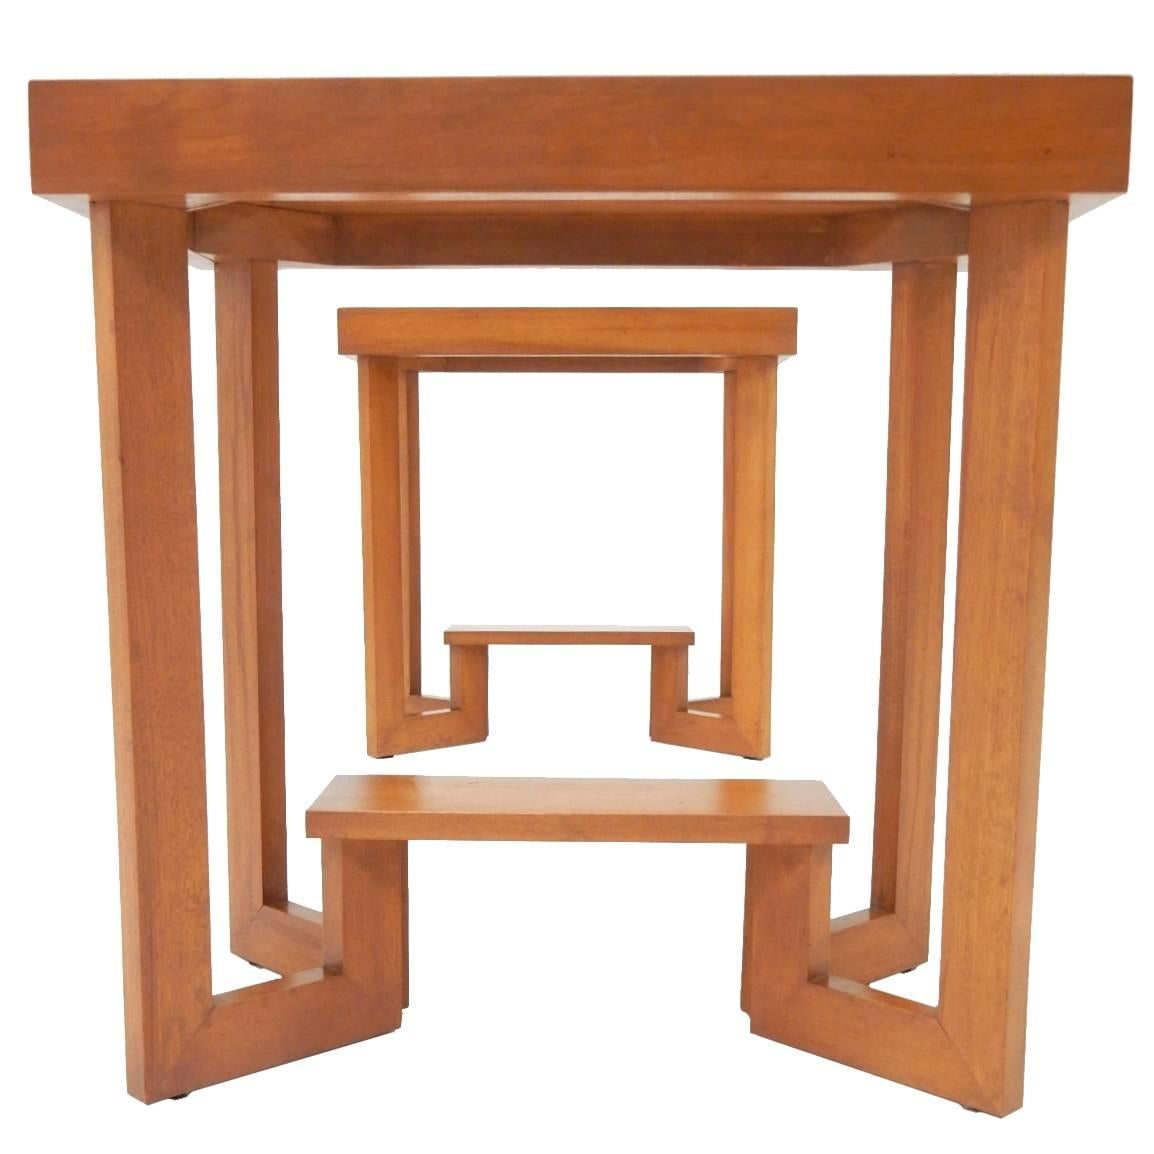 Pair of 1930s Geometric Side Tables in the Manner of Frank Lloyd Wright